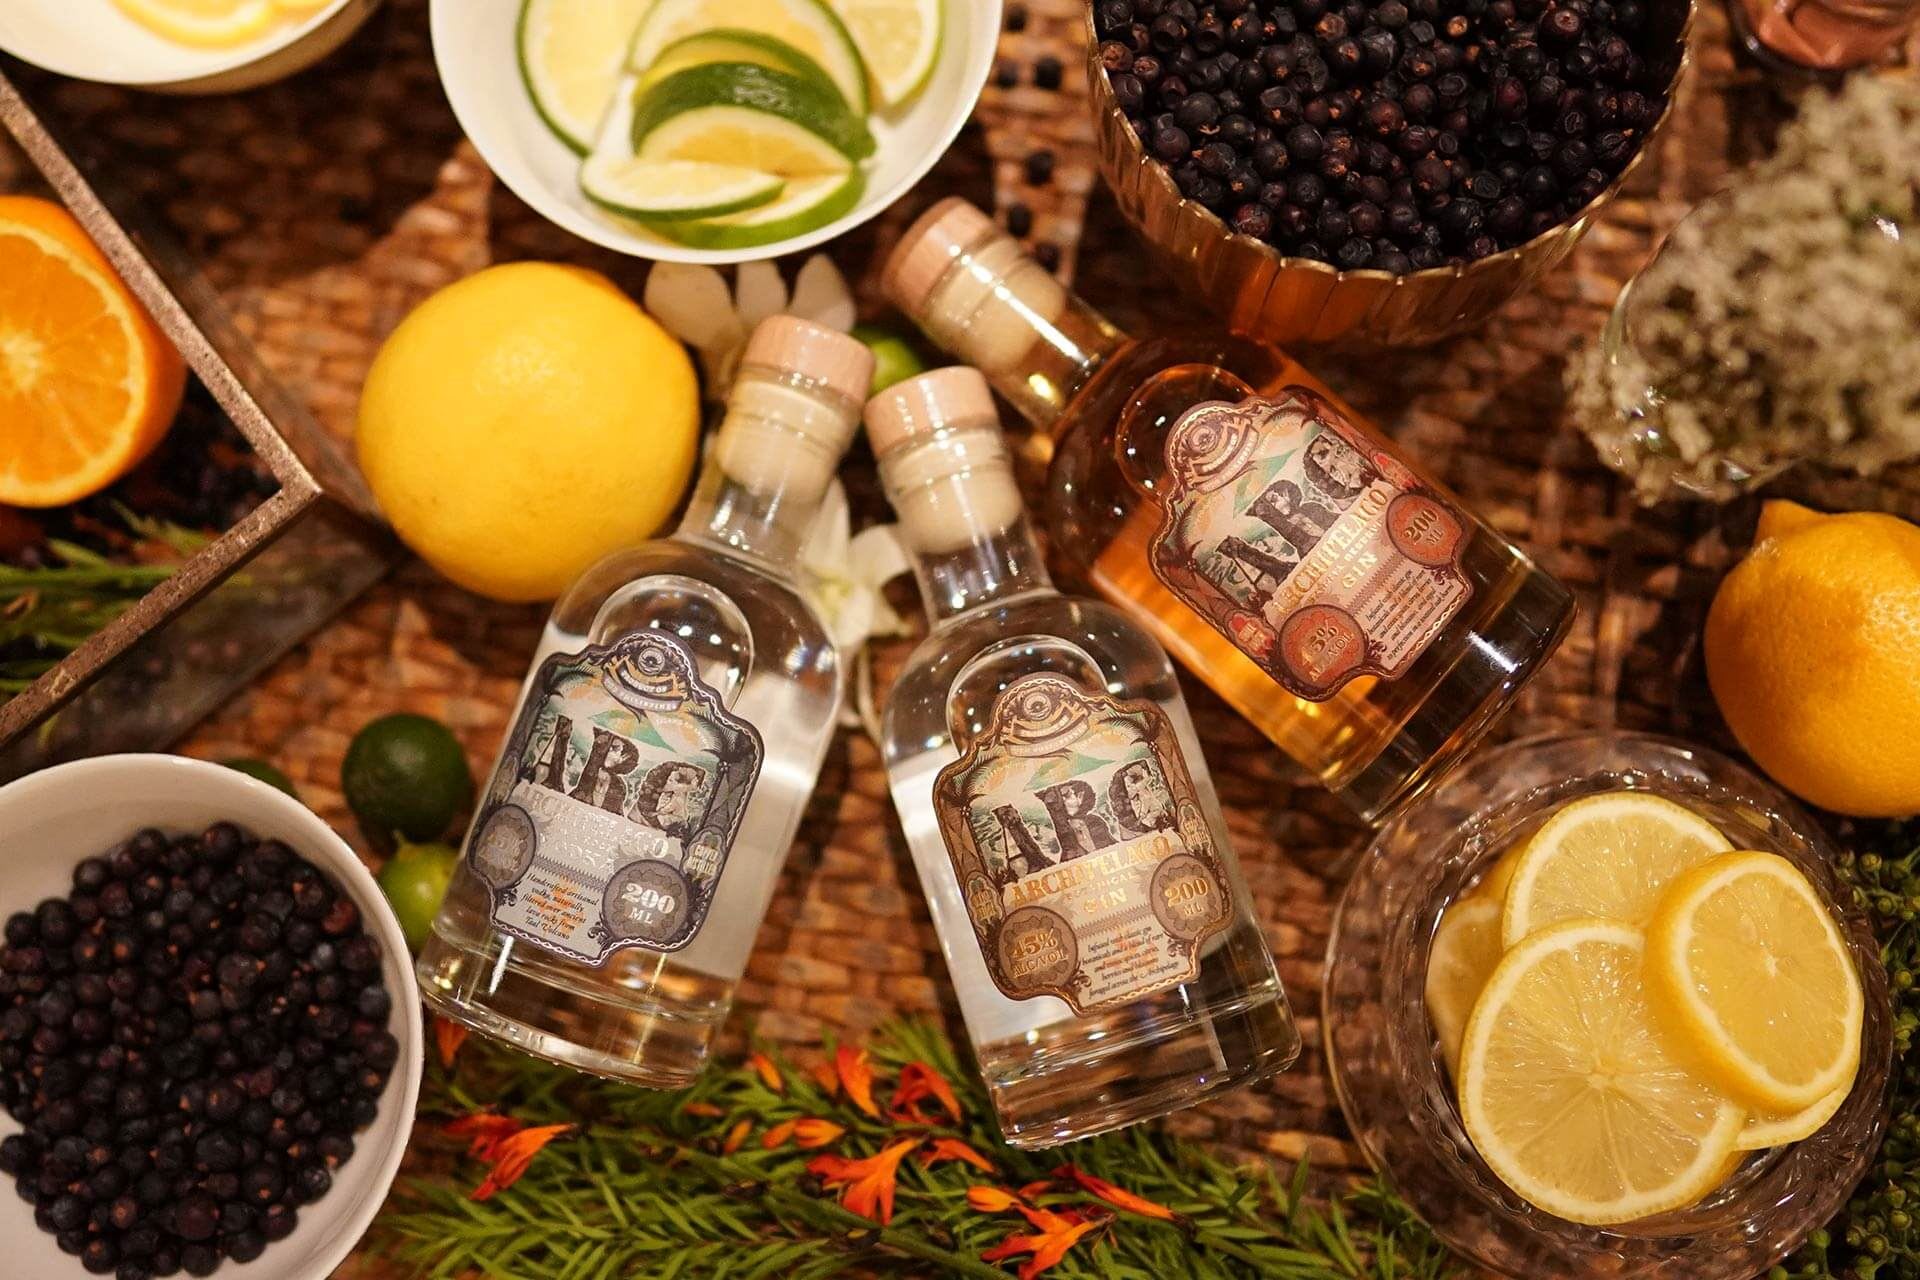 ARC Botanical Gin offers a taste of the best and boldest flavors of the Philippines.